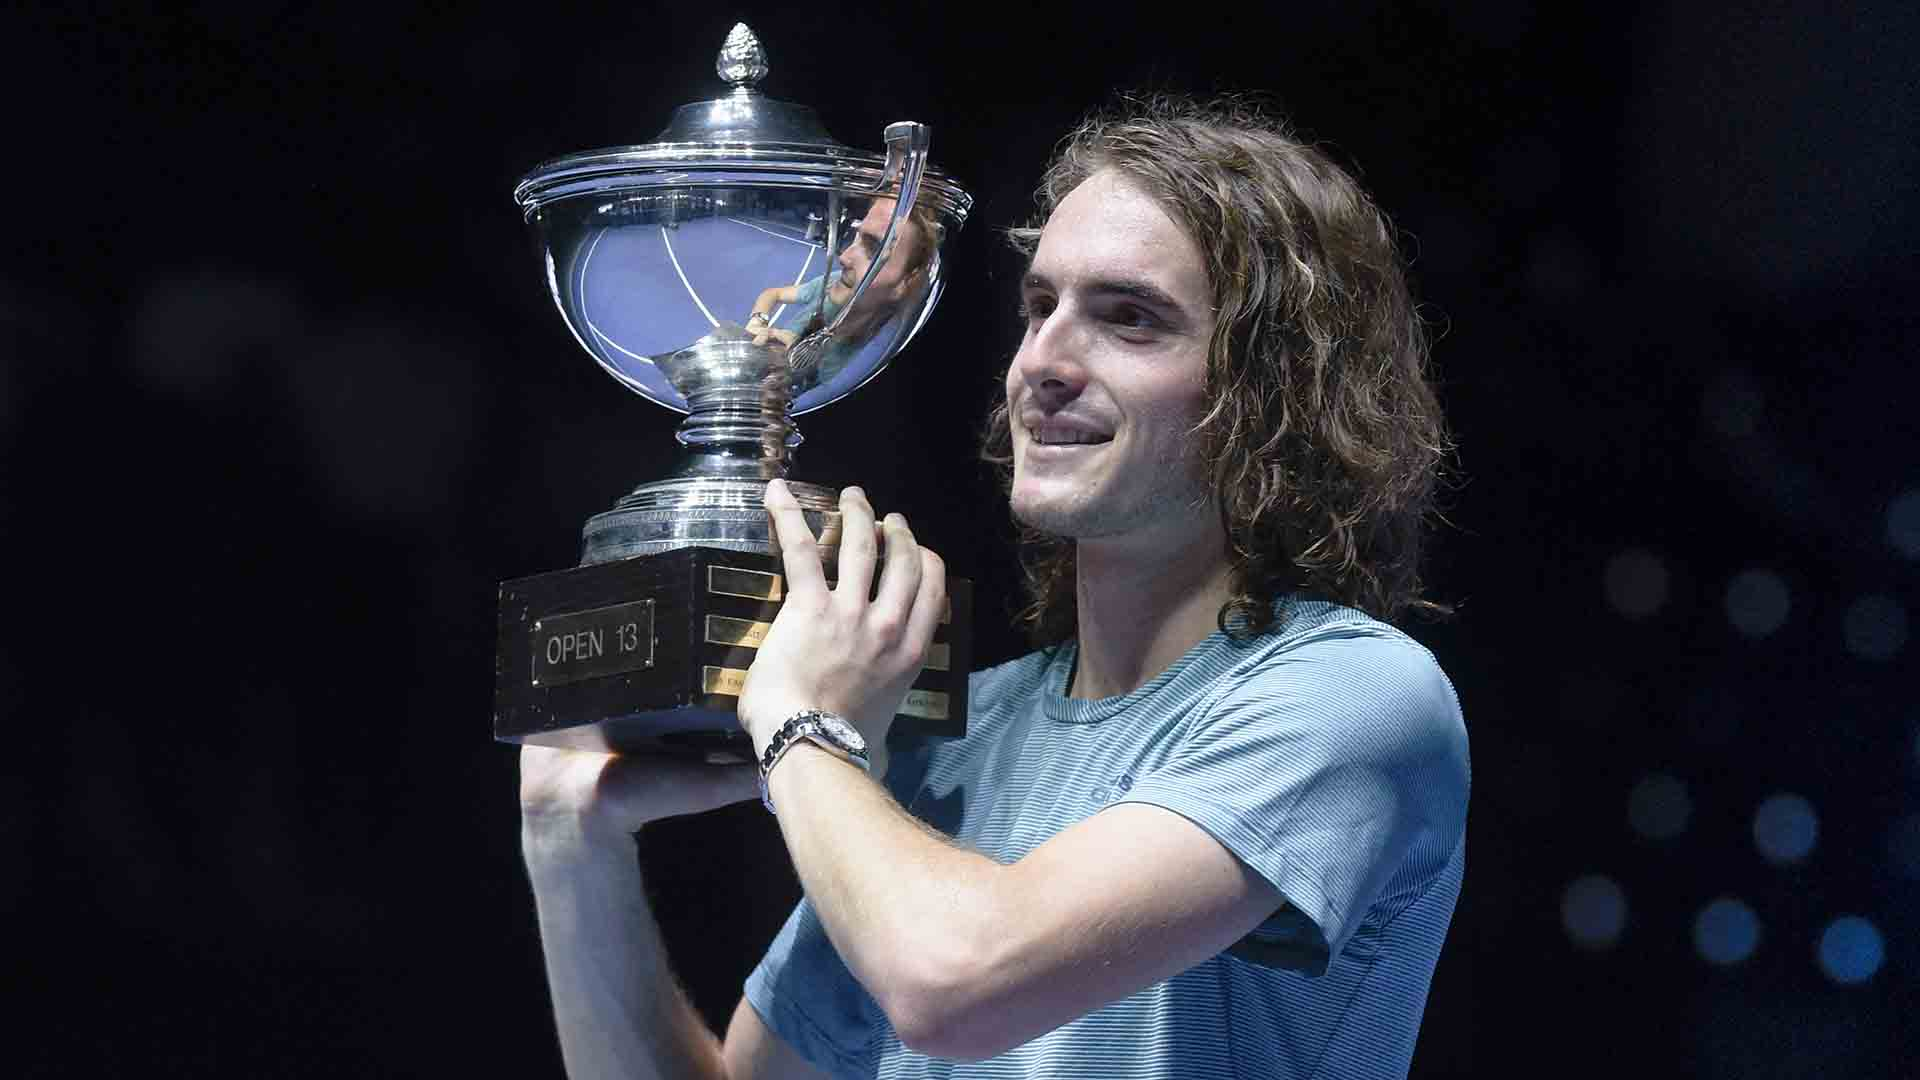 <a href='https://www.atptour.com/en/players/stefanos-tsitsipas/te51/overview'>Stefanos Tsitsipas</a> wins the <a href='https://www.atptour.com/en/tournaments/marseille/496/overview'>Open 13 Provence</a> title without dropping a set.